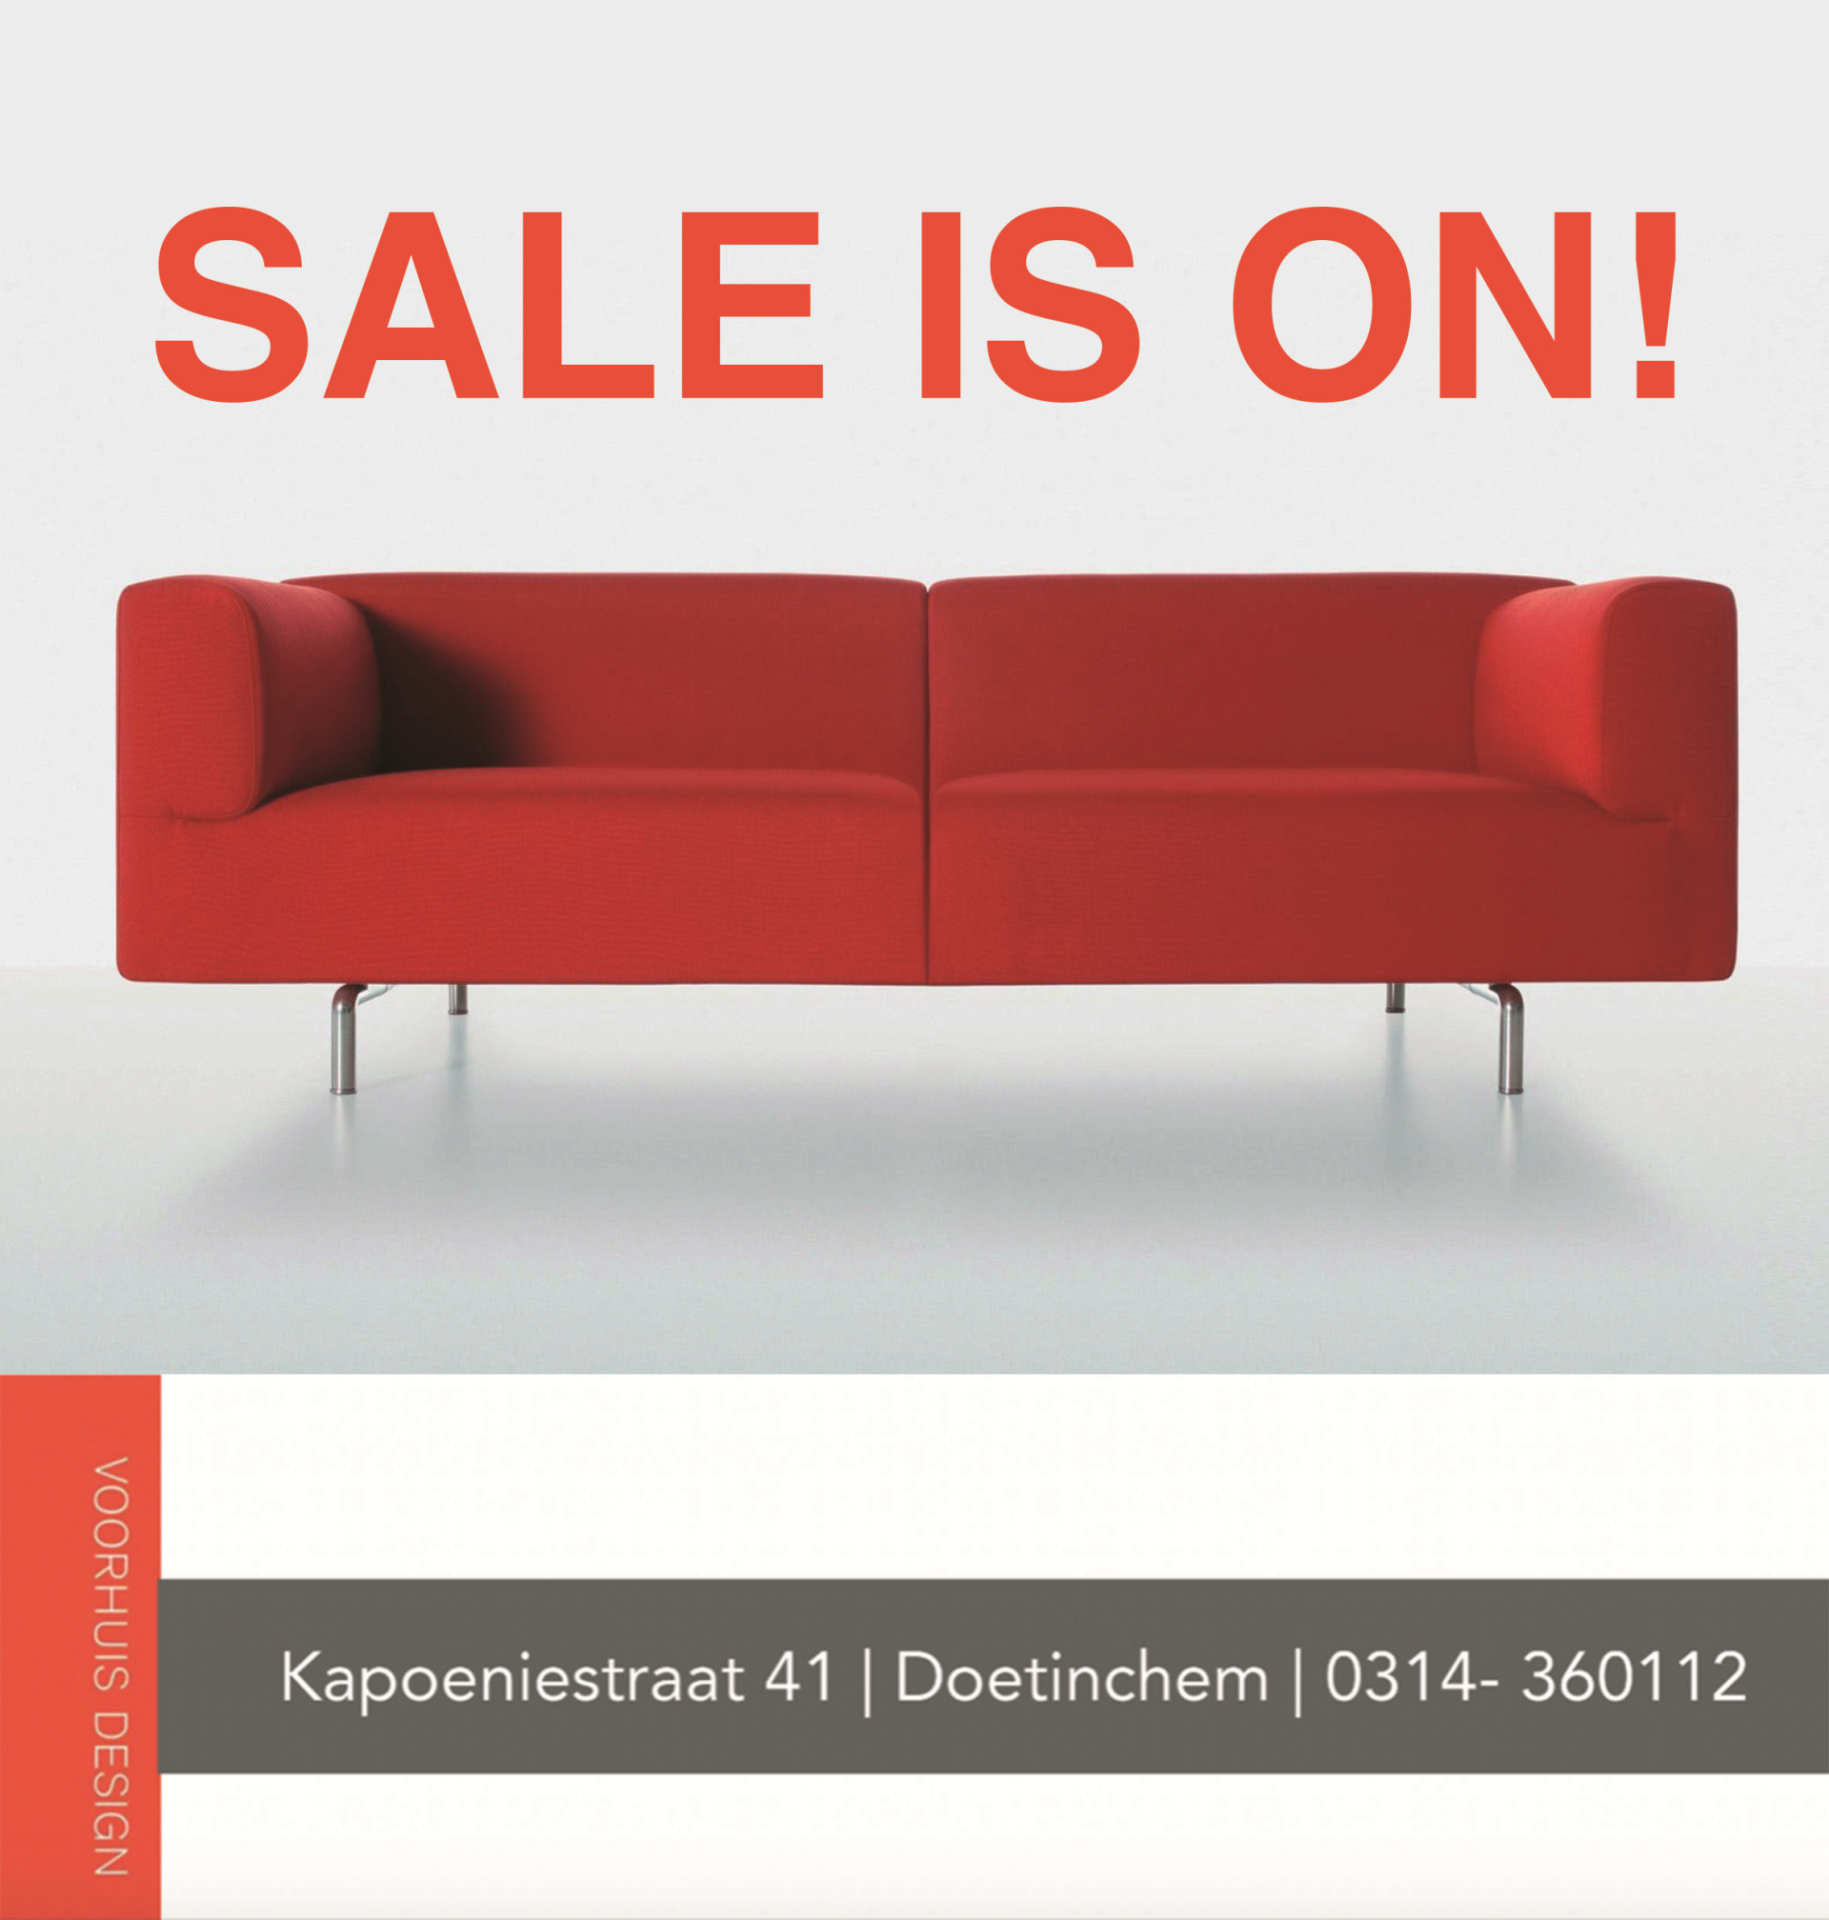 Excellent Voorhuisdesign Nieuws Bekijken Sale Is On Bralicious Painted Fabric Chair Ideas Braliciousco